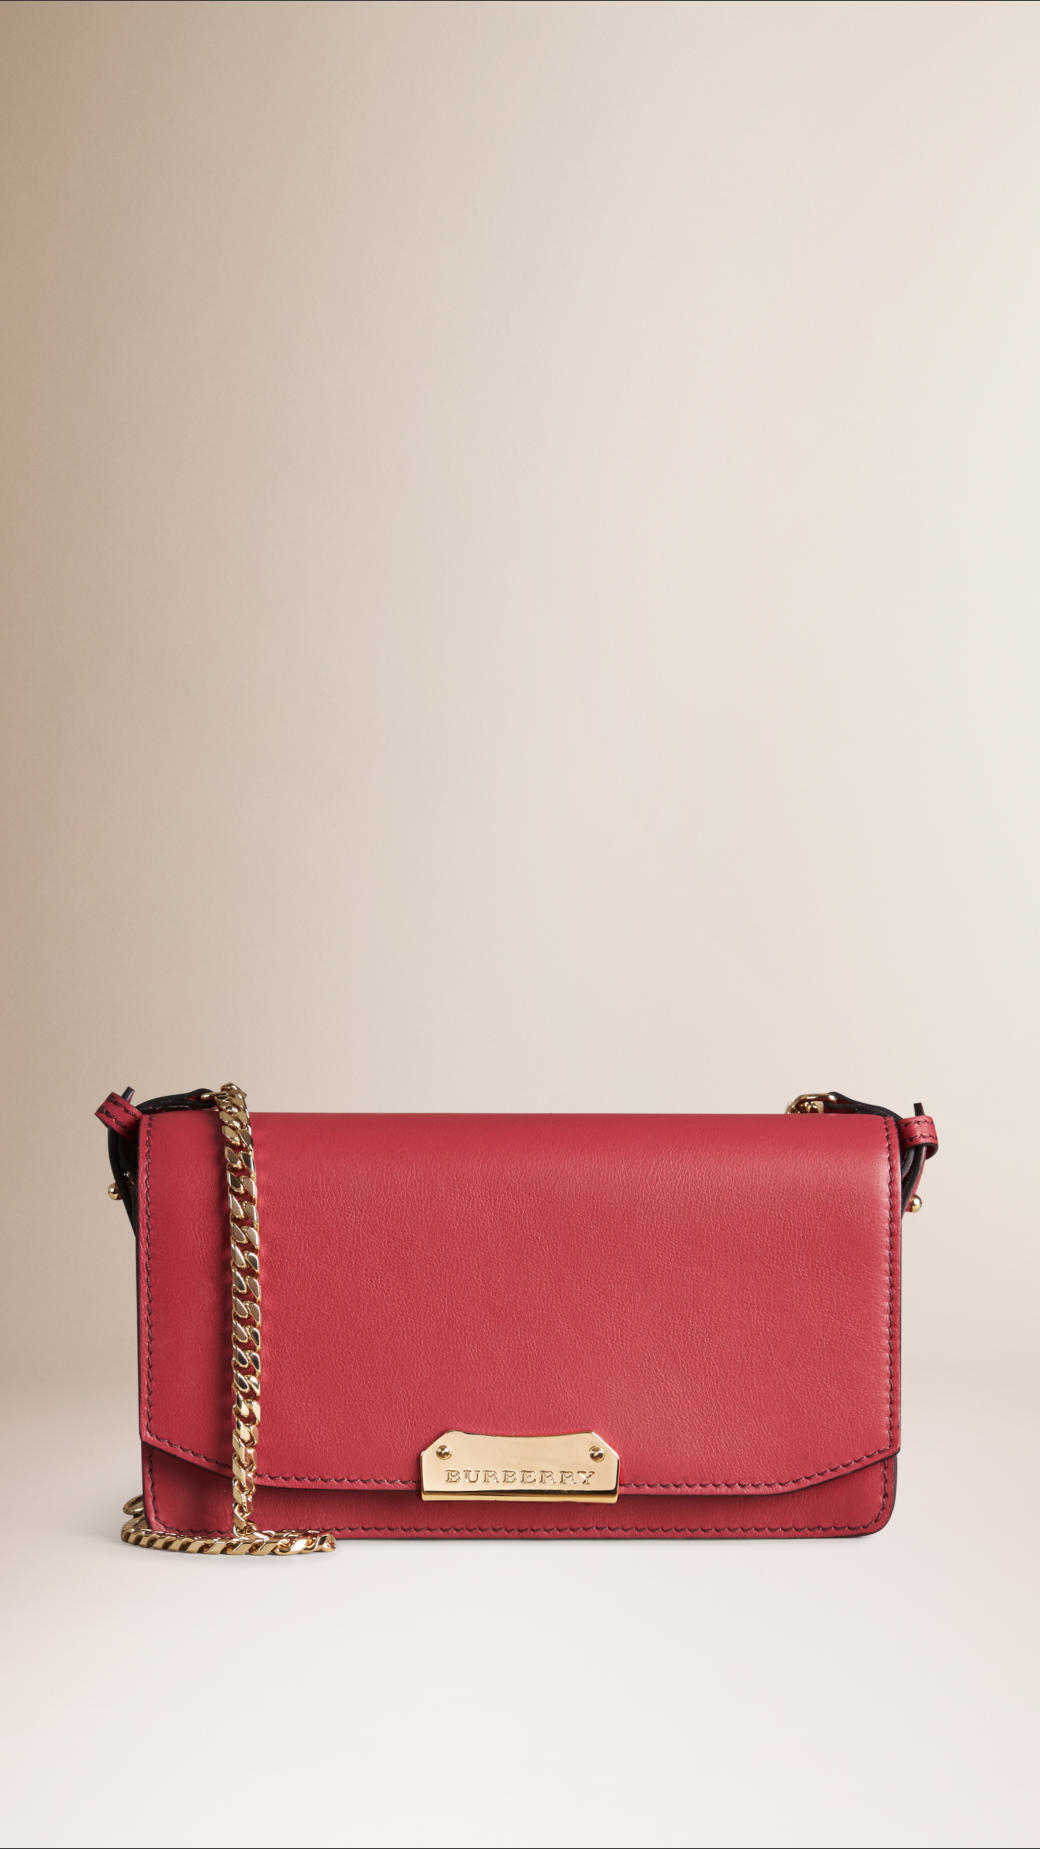 c1aae4c4369b Lyst - Burberry Leather Clutch Bag With Chain in Pink